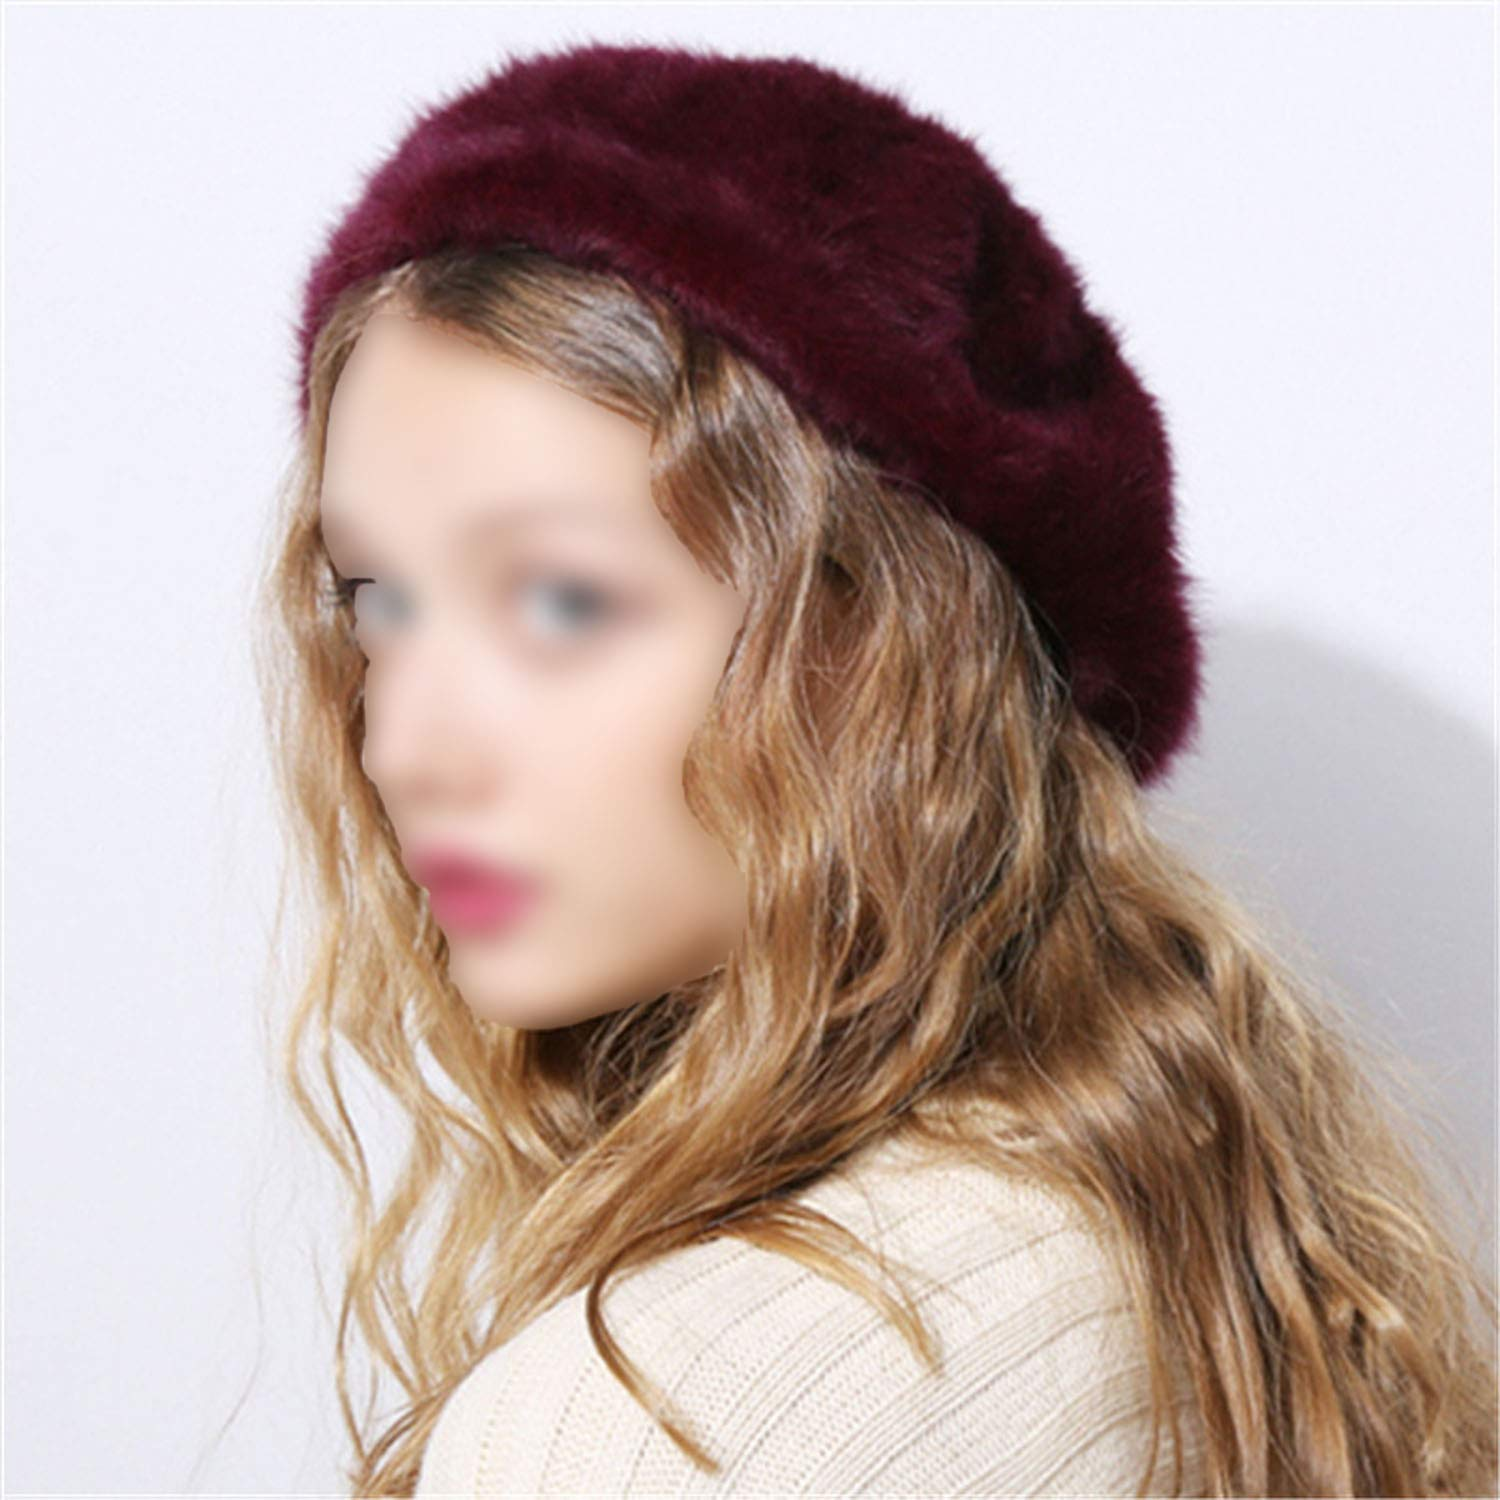 29dcee06 Winter Autumn Women's Rabbit Fur Beret hat for Girl Knitted hat Solid  Fashion Taking The Female boina at Amazon Women's Clothing store: